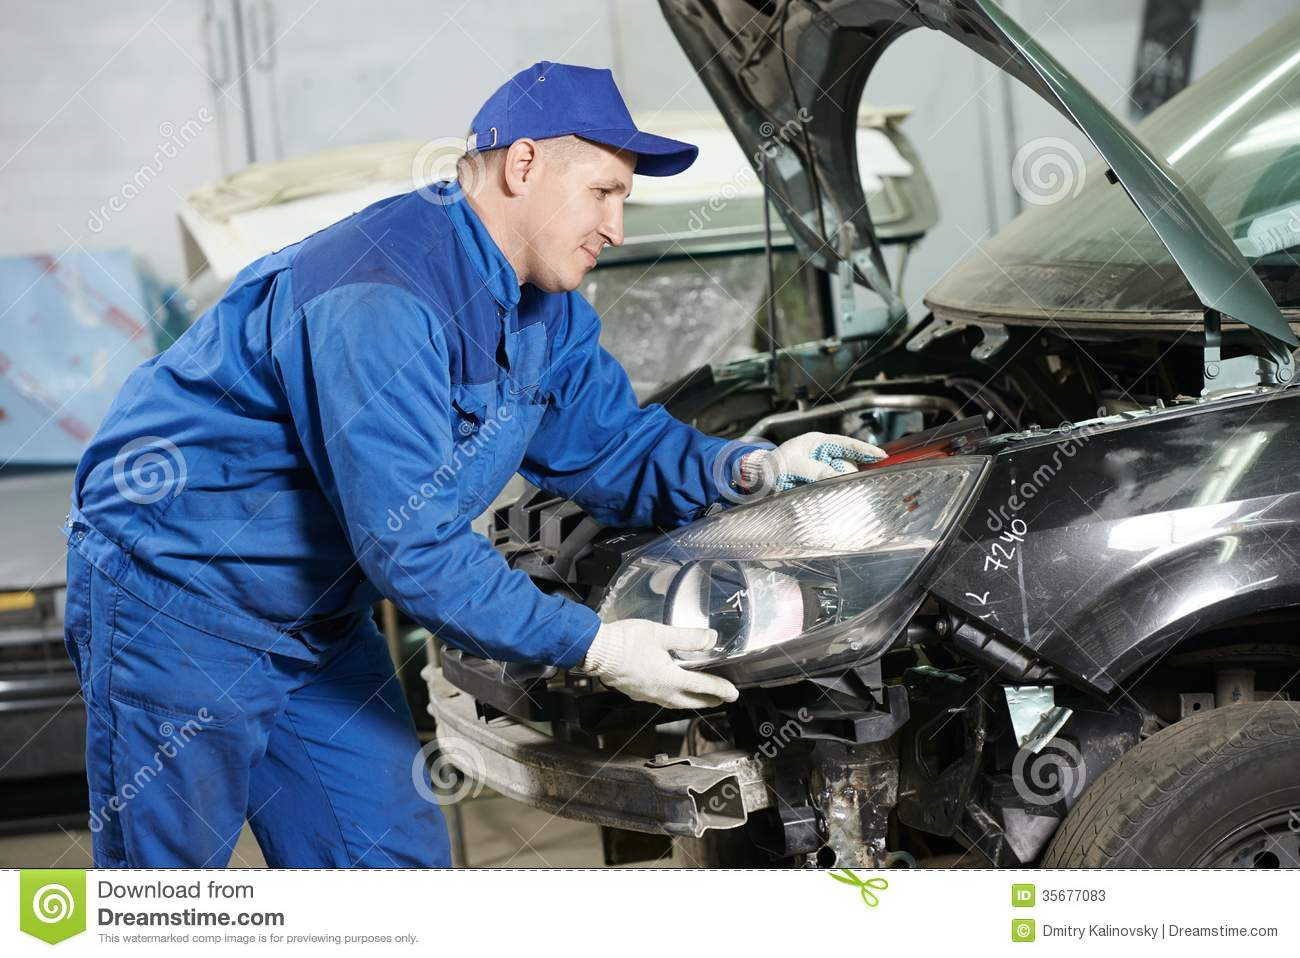 About Forester's Tire & Auto Repair